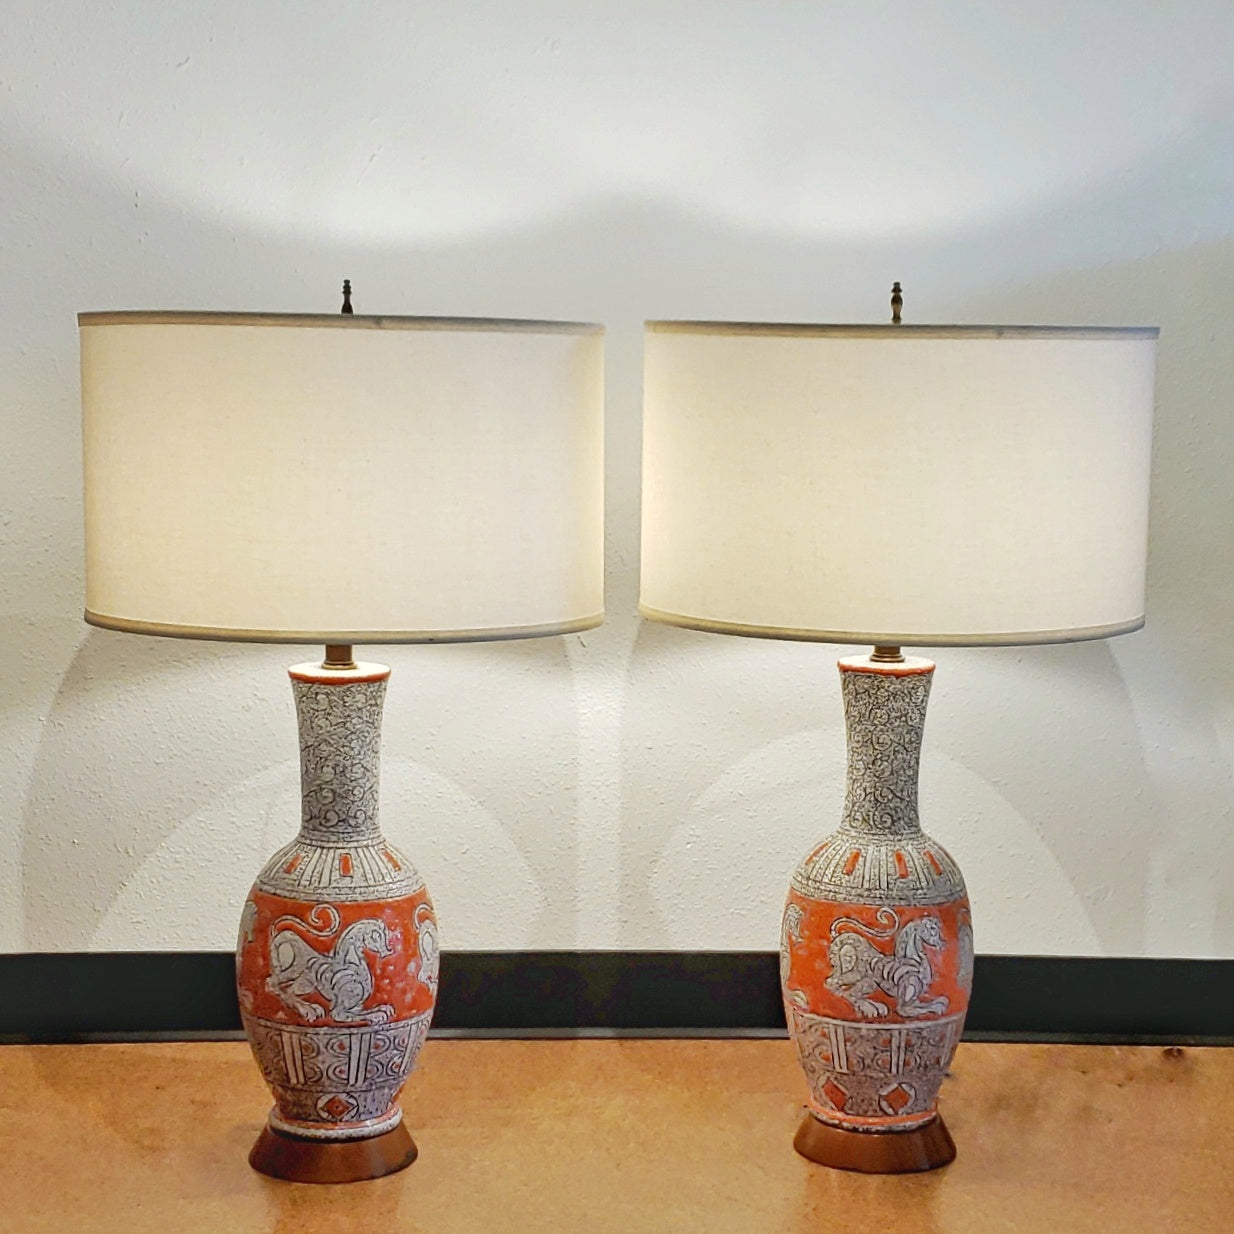 FRATELLI FANCIULLACCI TABLE LAMPS FOR ELBEE IMPORTS